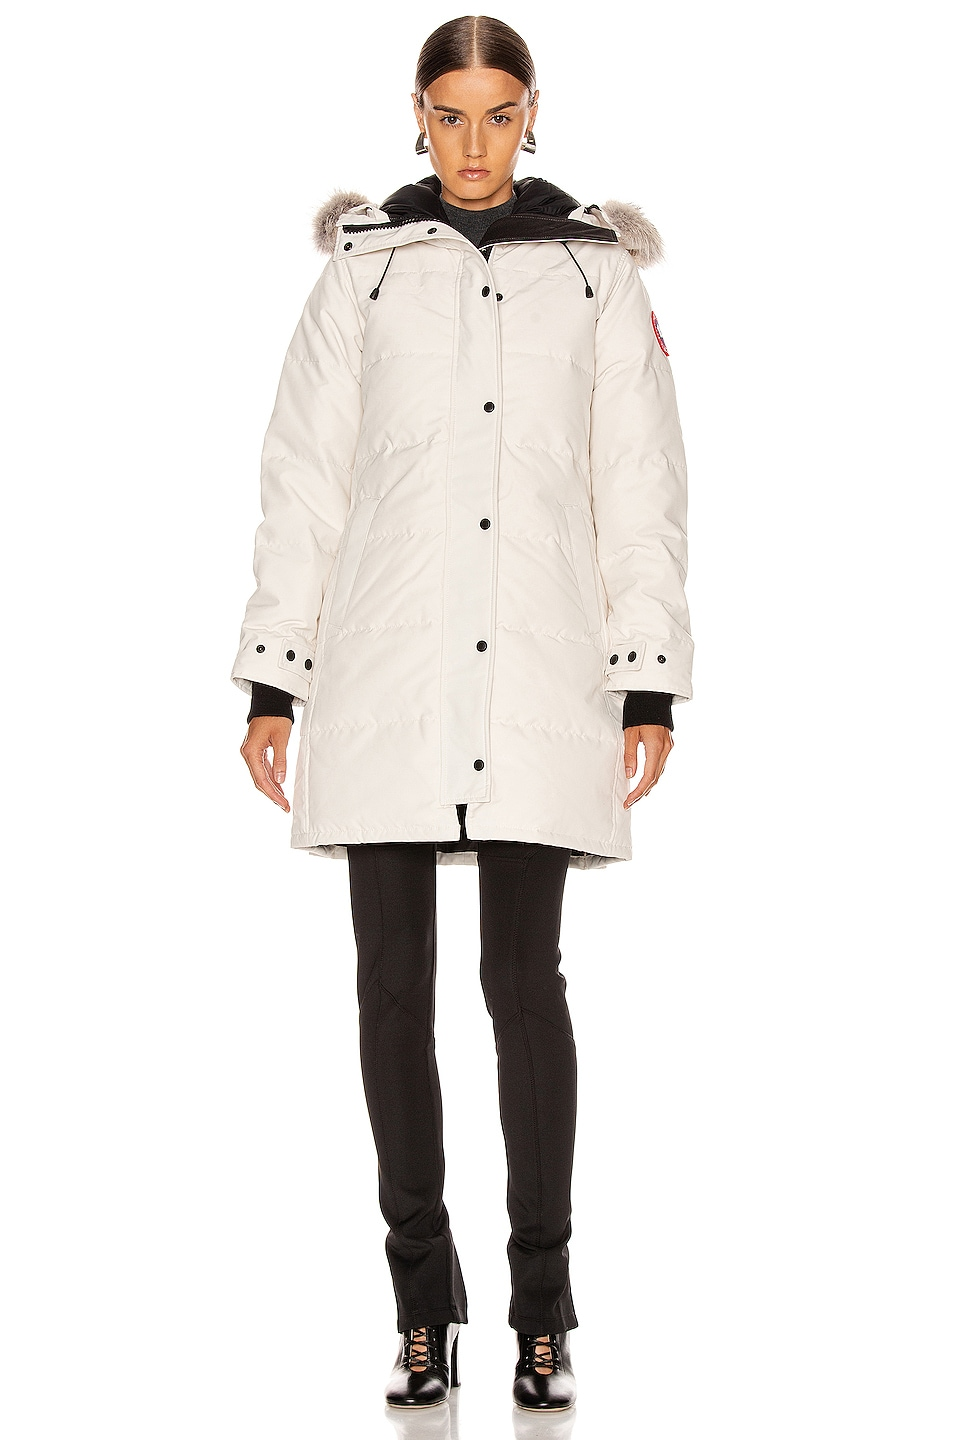 Image 2 of Canada Goose Shelburne Parka in Early Light